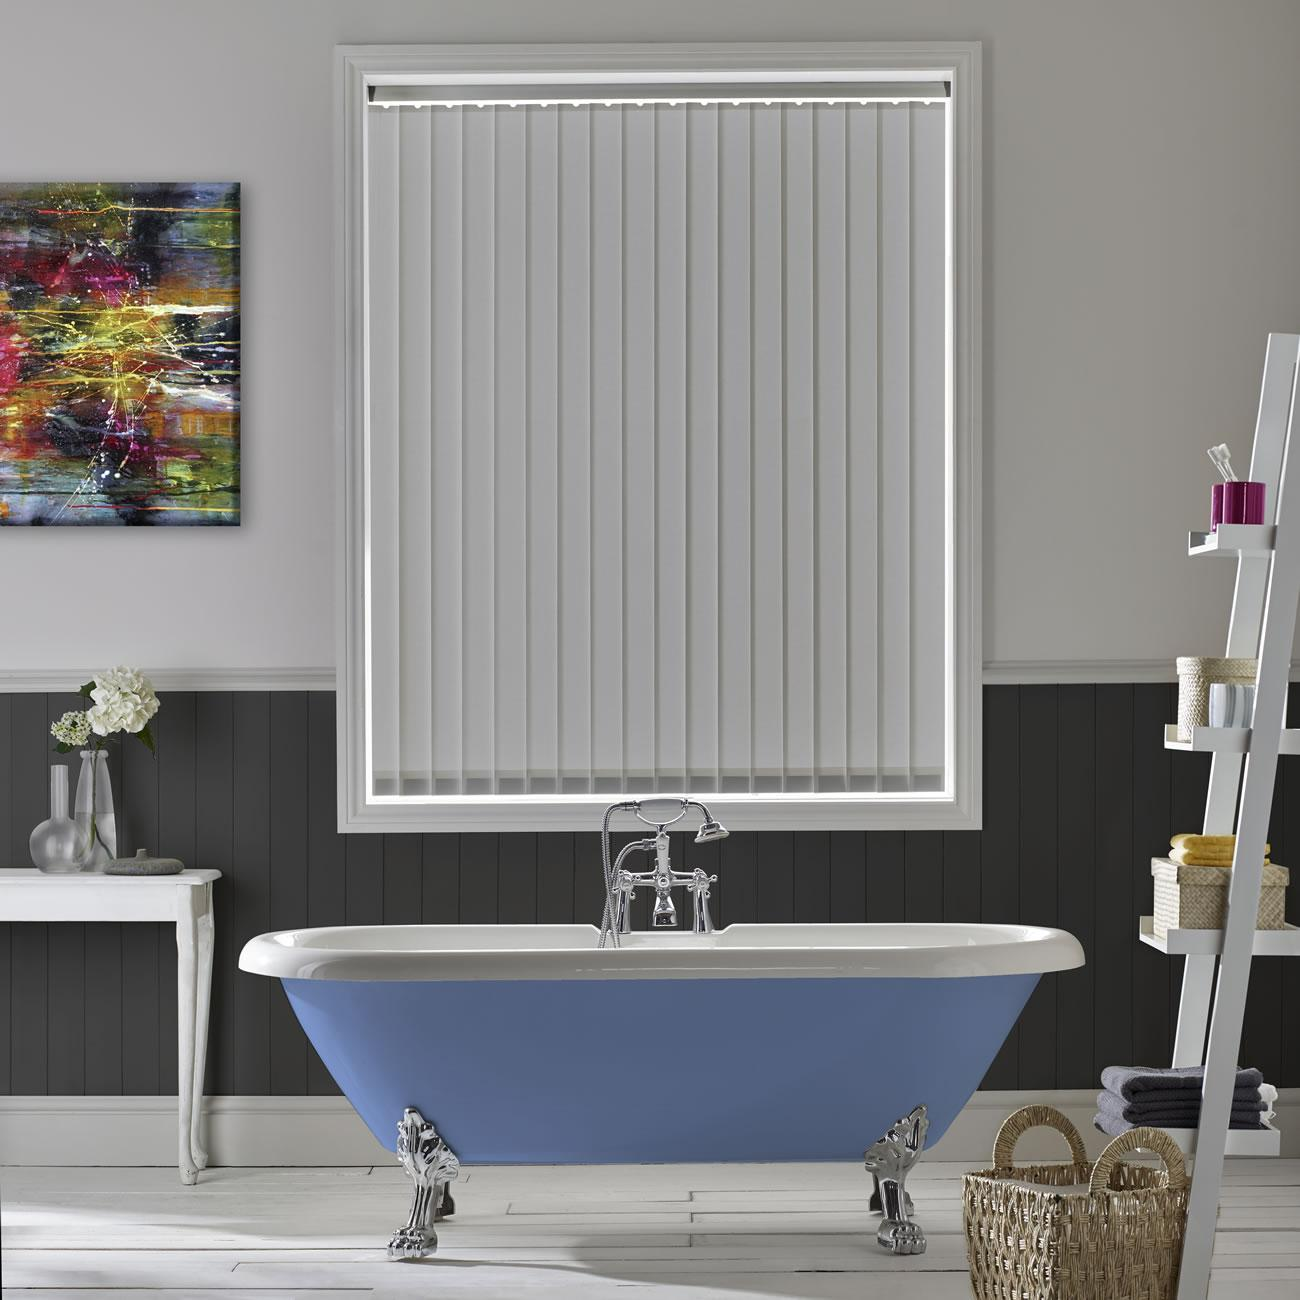 Your Bathroom - Curtains or Blinds?